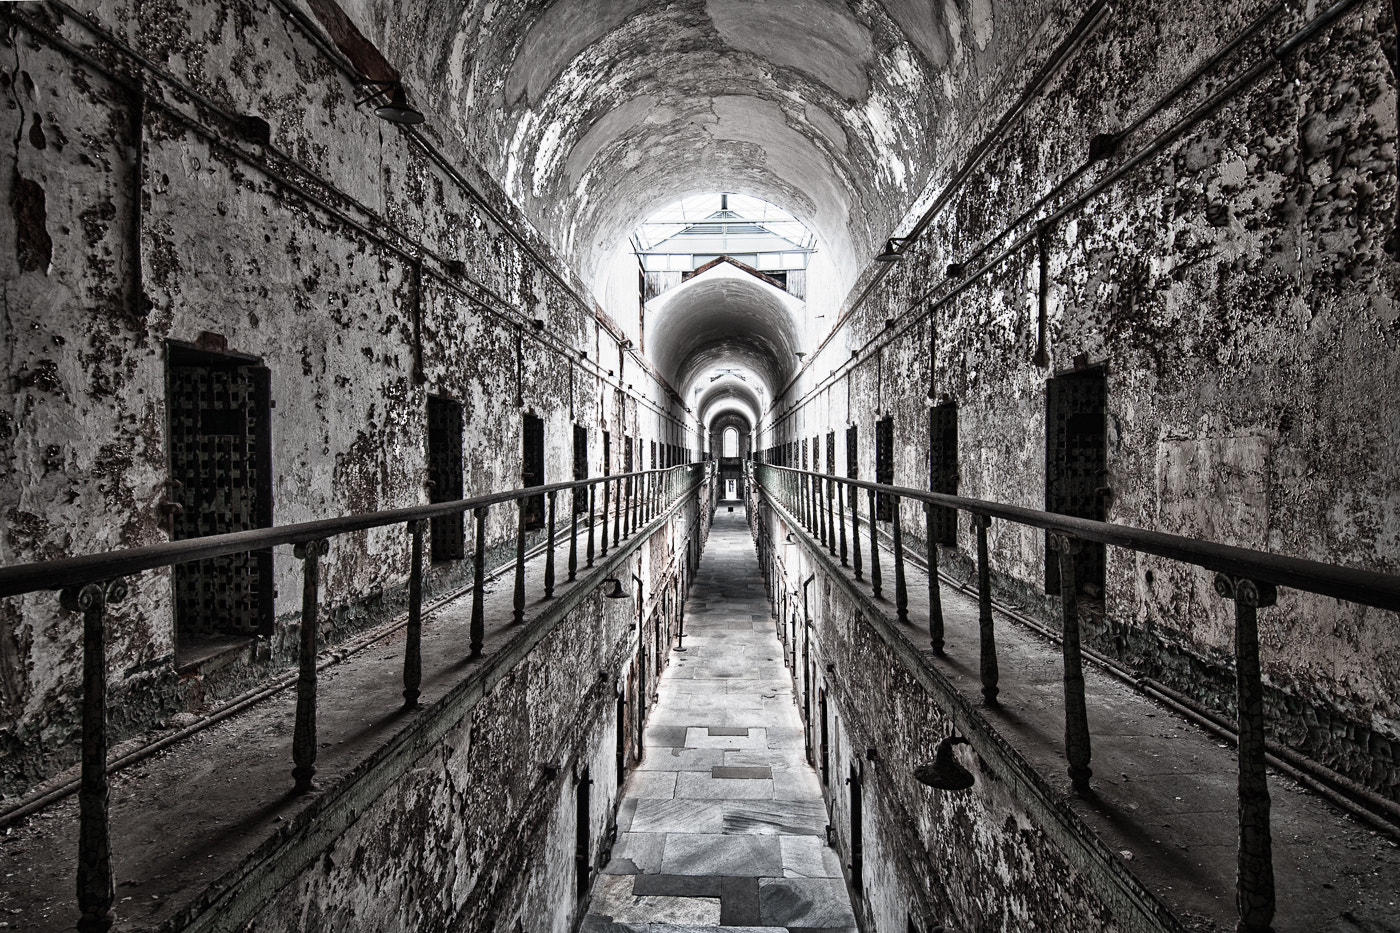 Photograph Cell Block 7 by Denise Duhamel on 500px